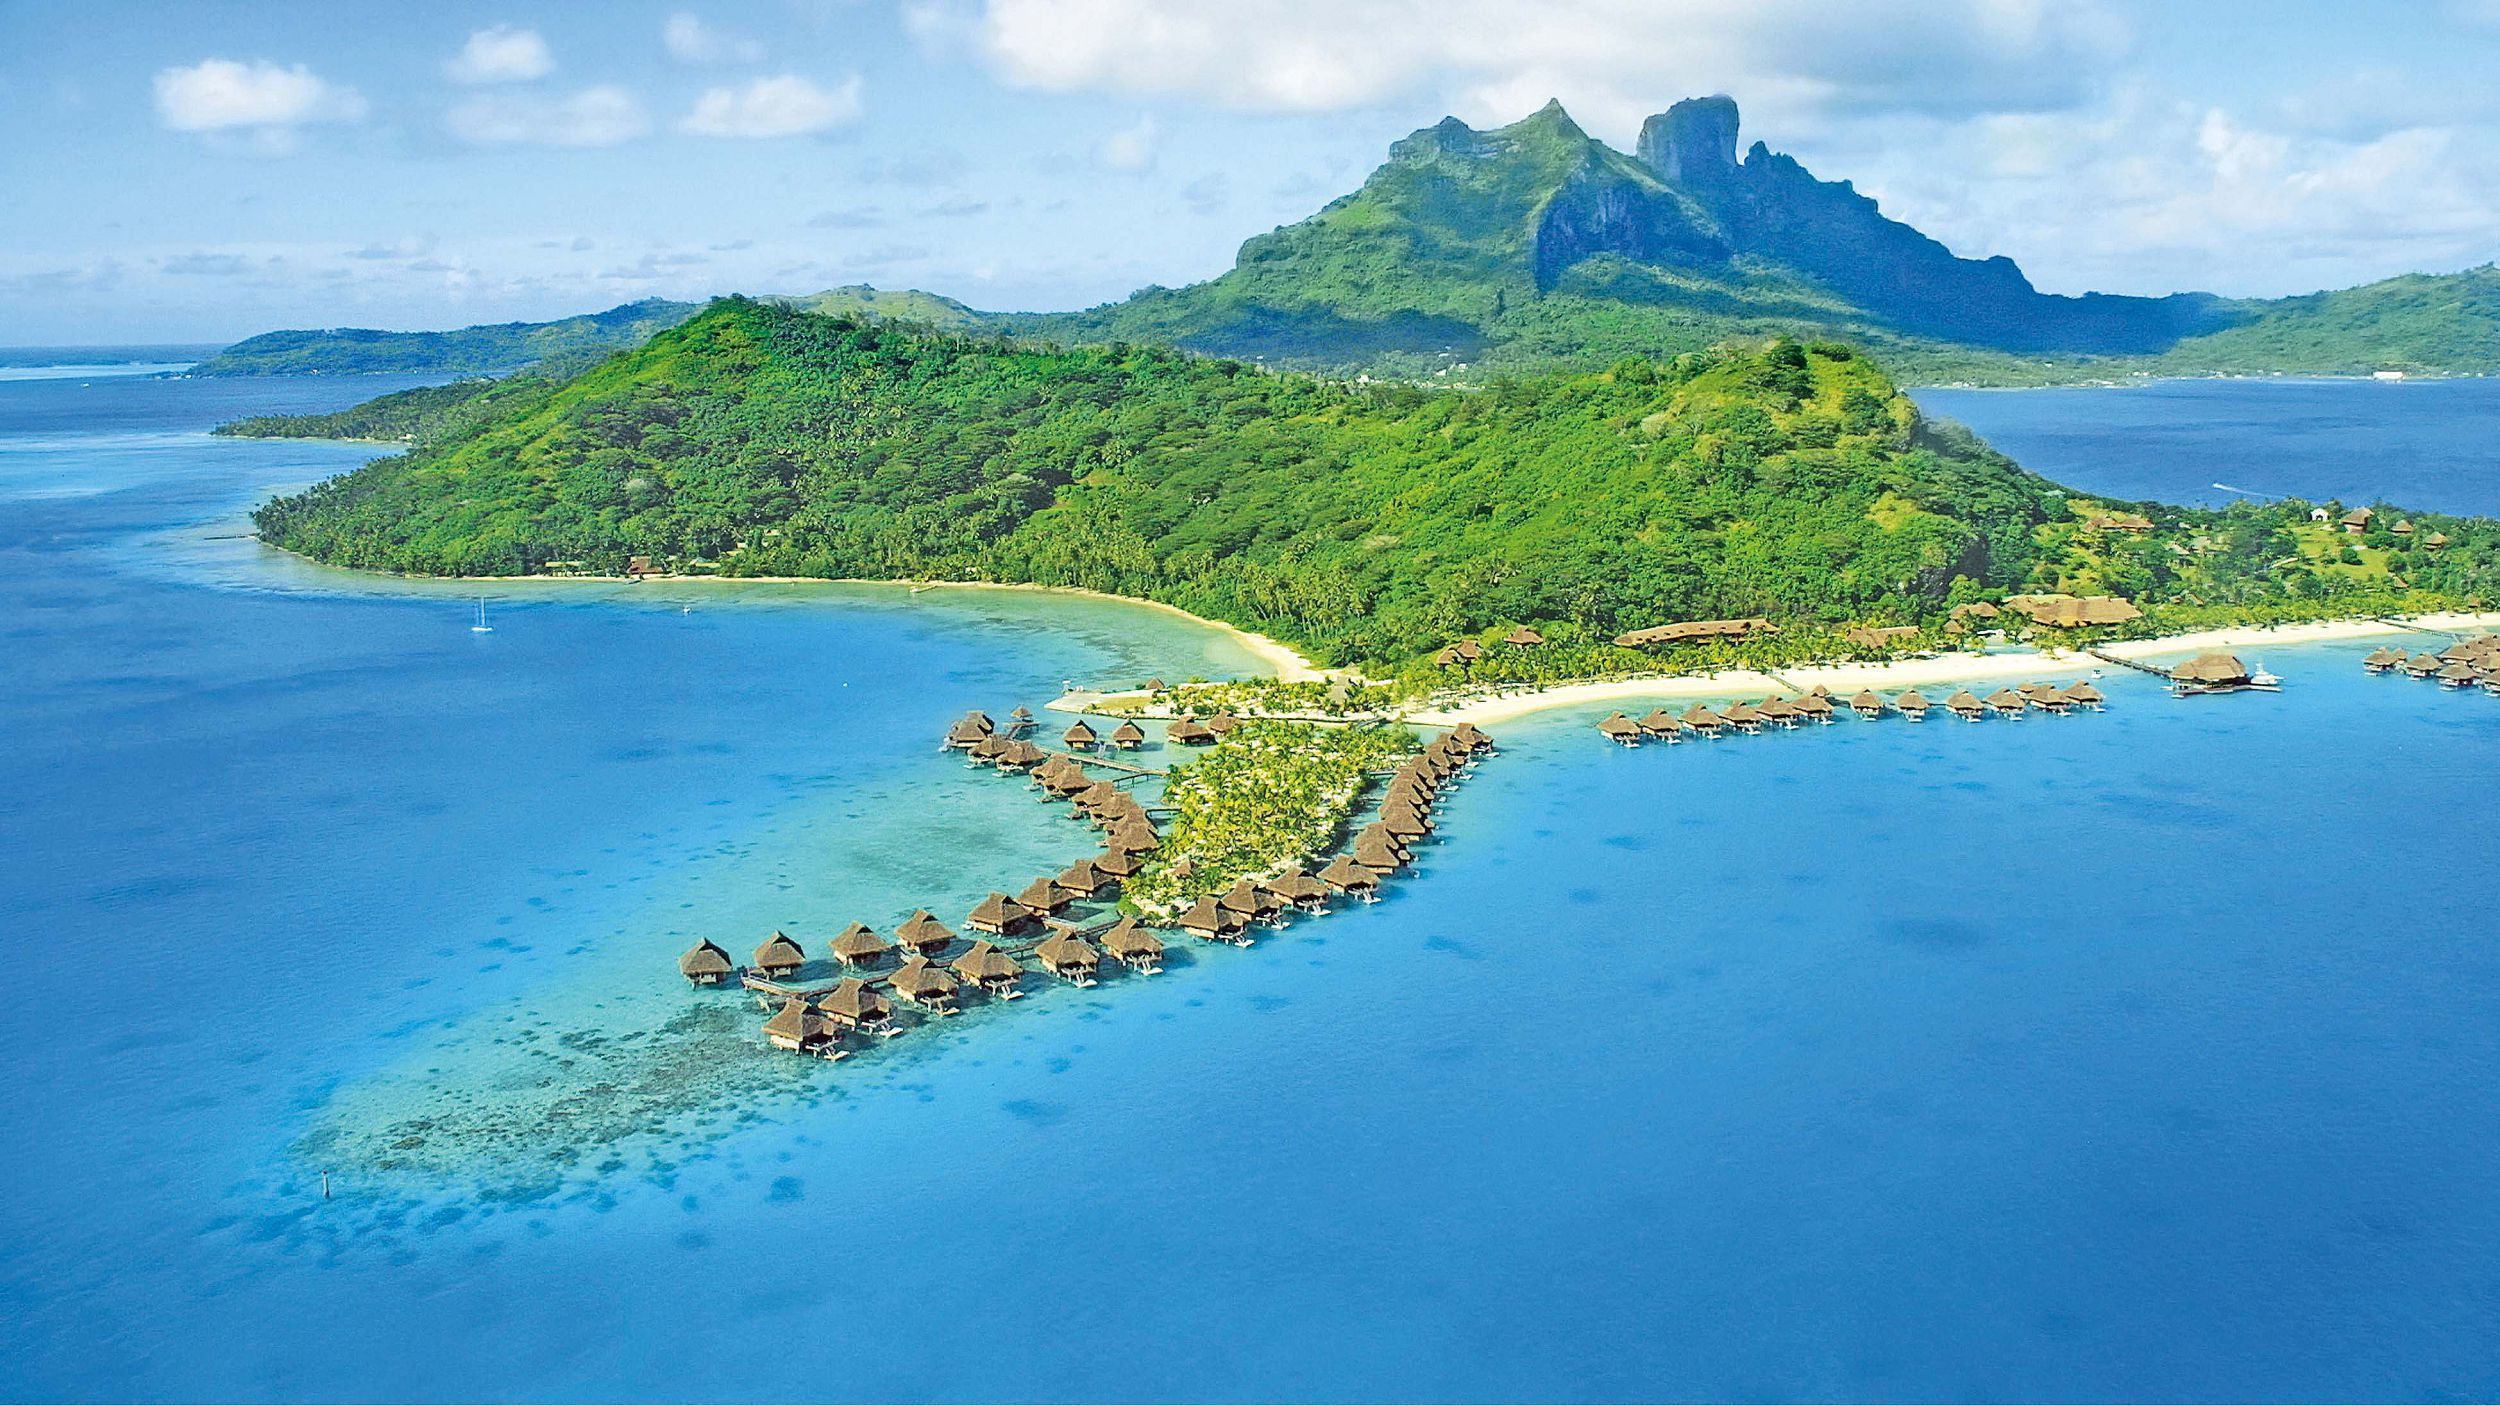 Aerial View Of Bora Bora With Mount Otemanu In Background And Coral Reef